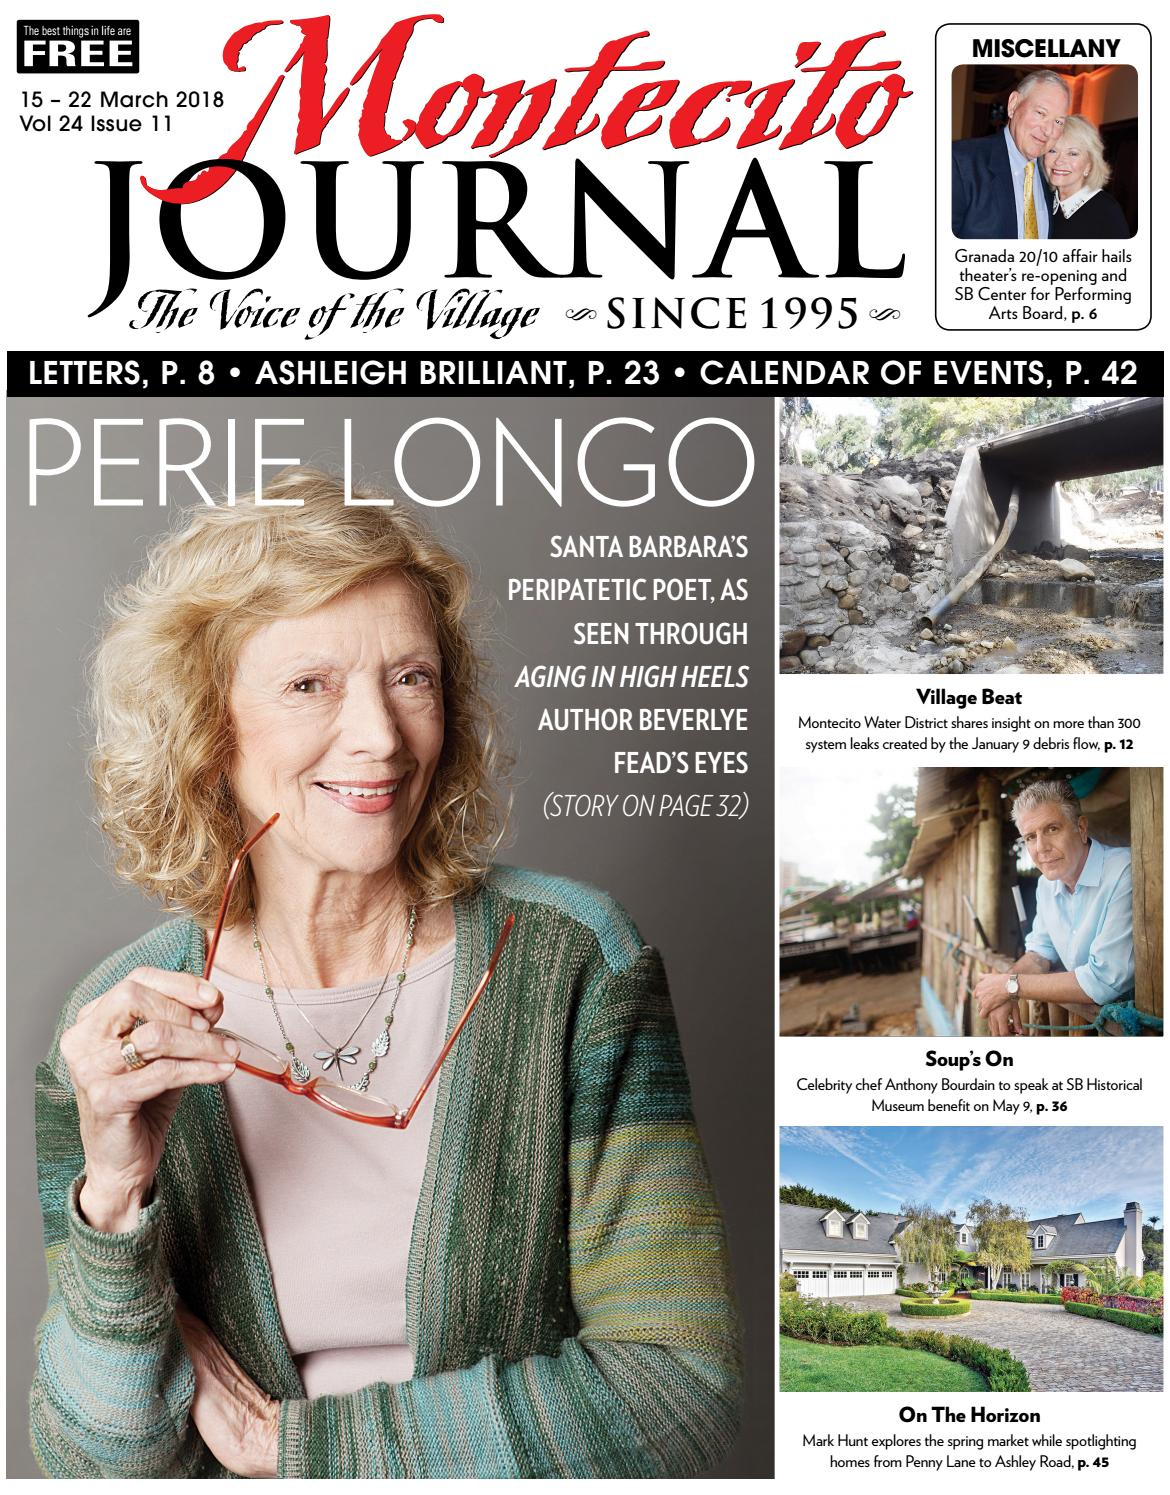 Perie longo by montecito journal issuu fandeluxe Images